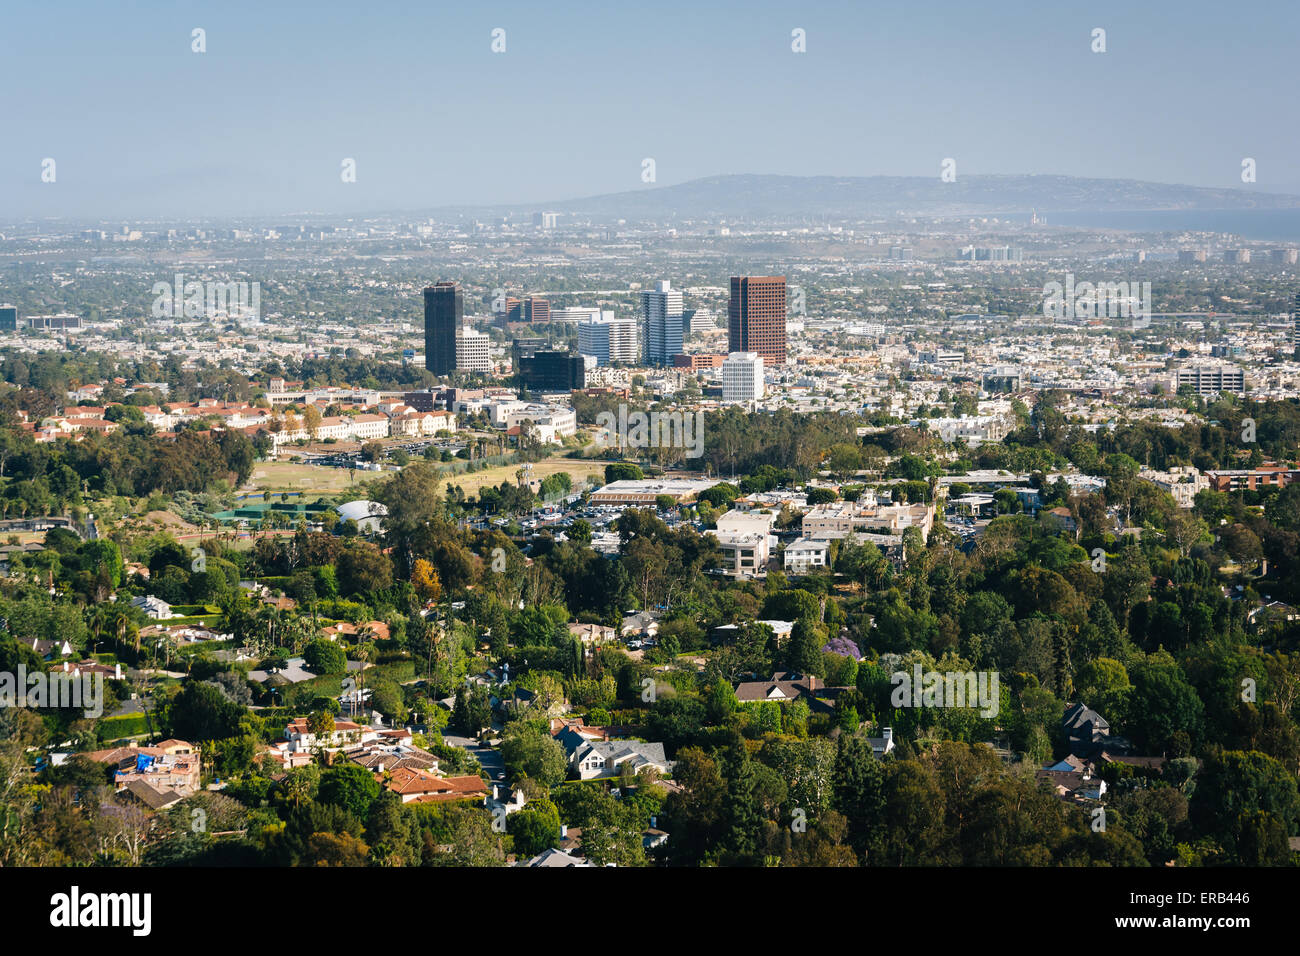 brentwood california scenery stock photos brentwood california scenery stock images alamy. Black Bedroom Furniture Sets. Home Design Ideas